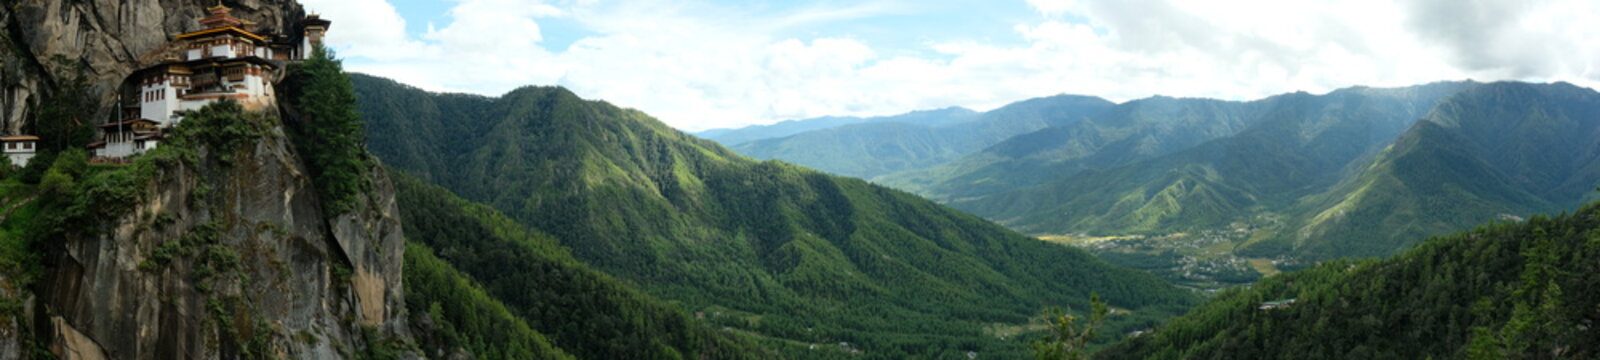 Panoramic view of Tiger's Nest Monastery, Paro Taktsang (top left) and surrounding breathtaking mountains in Bhutan